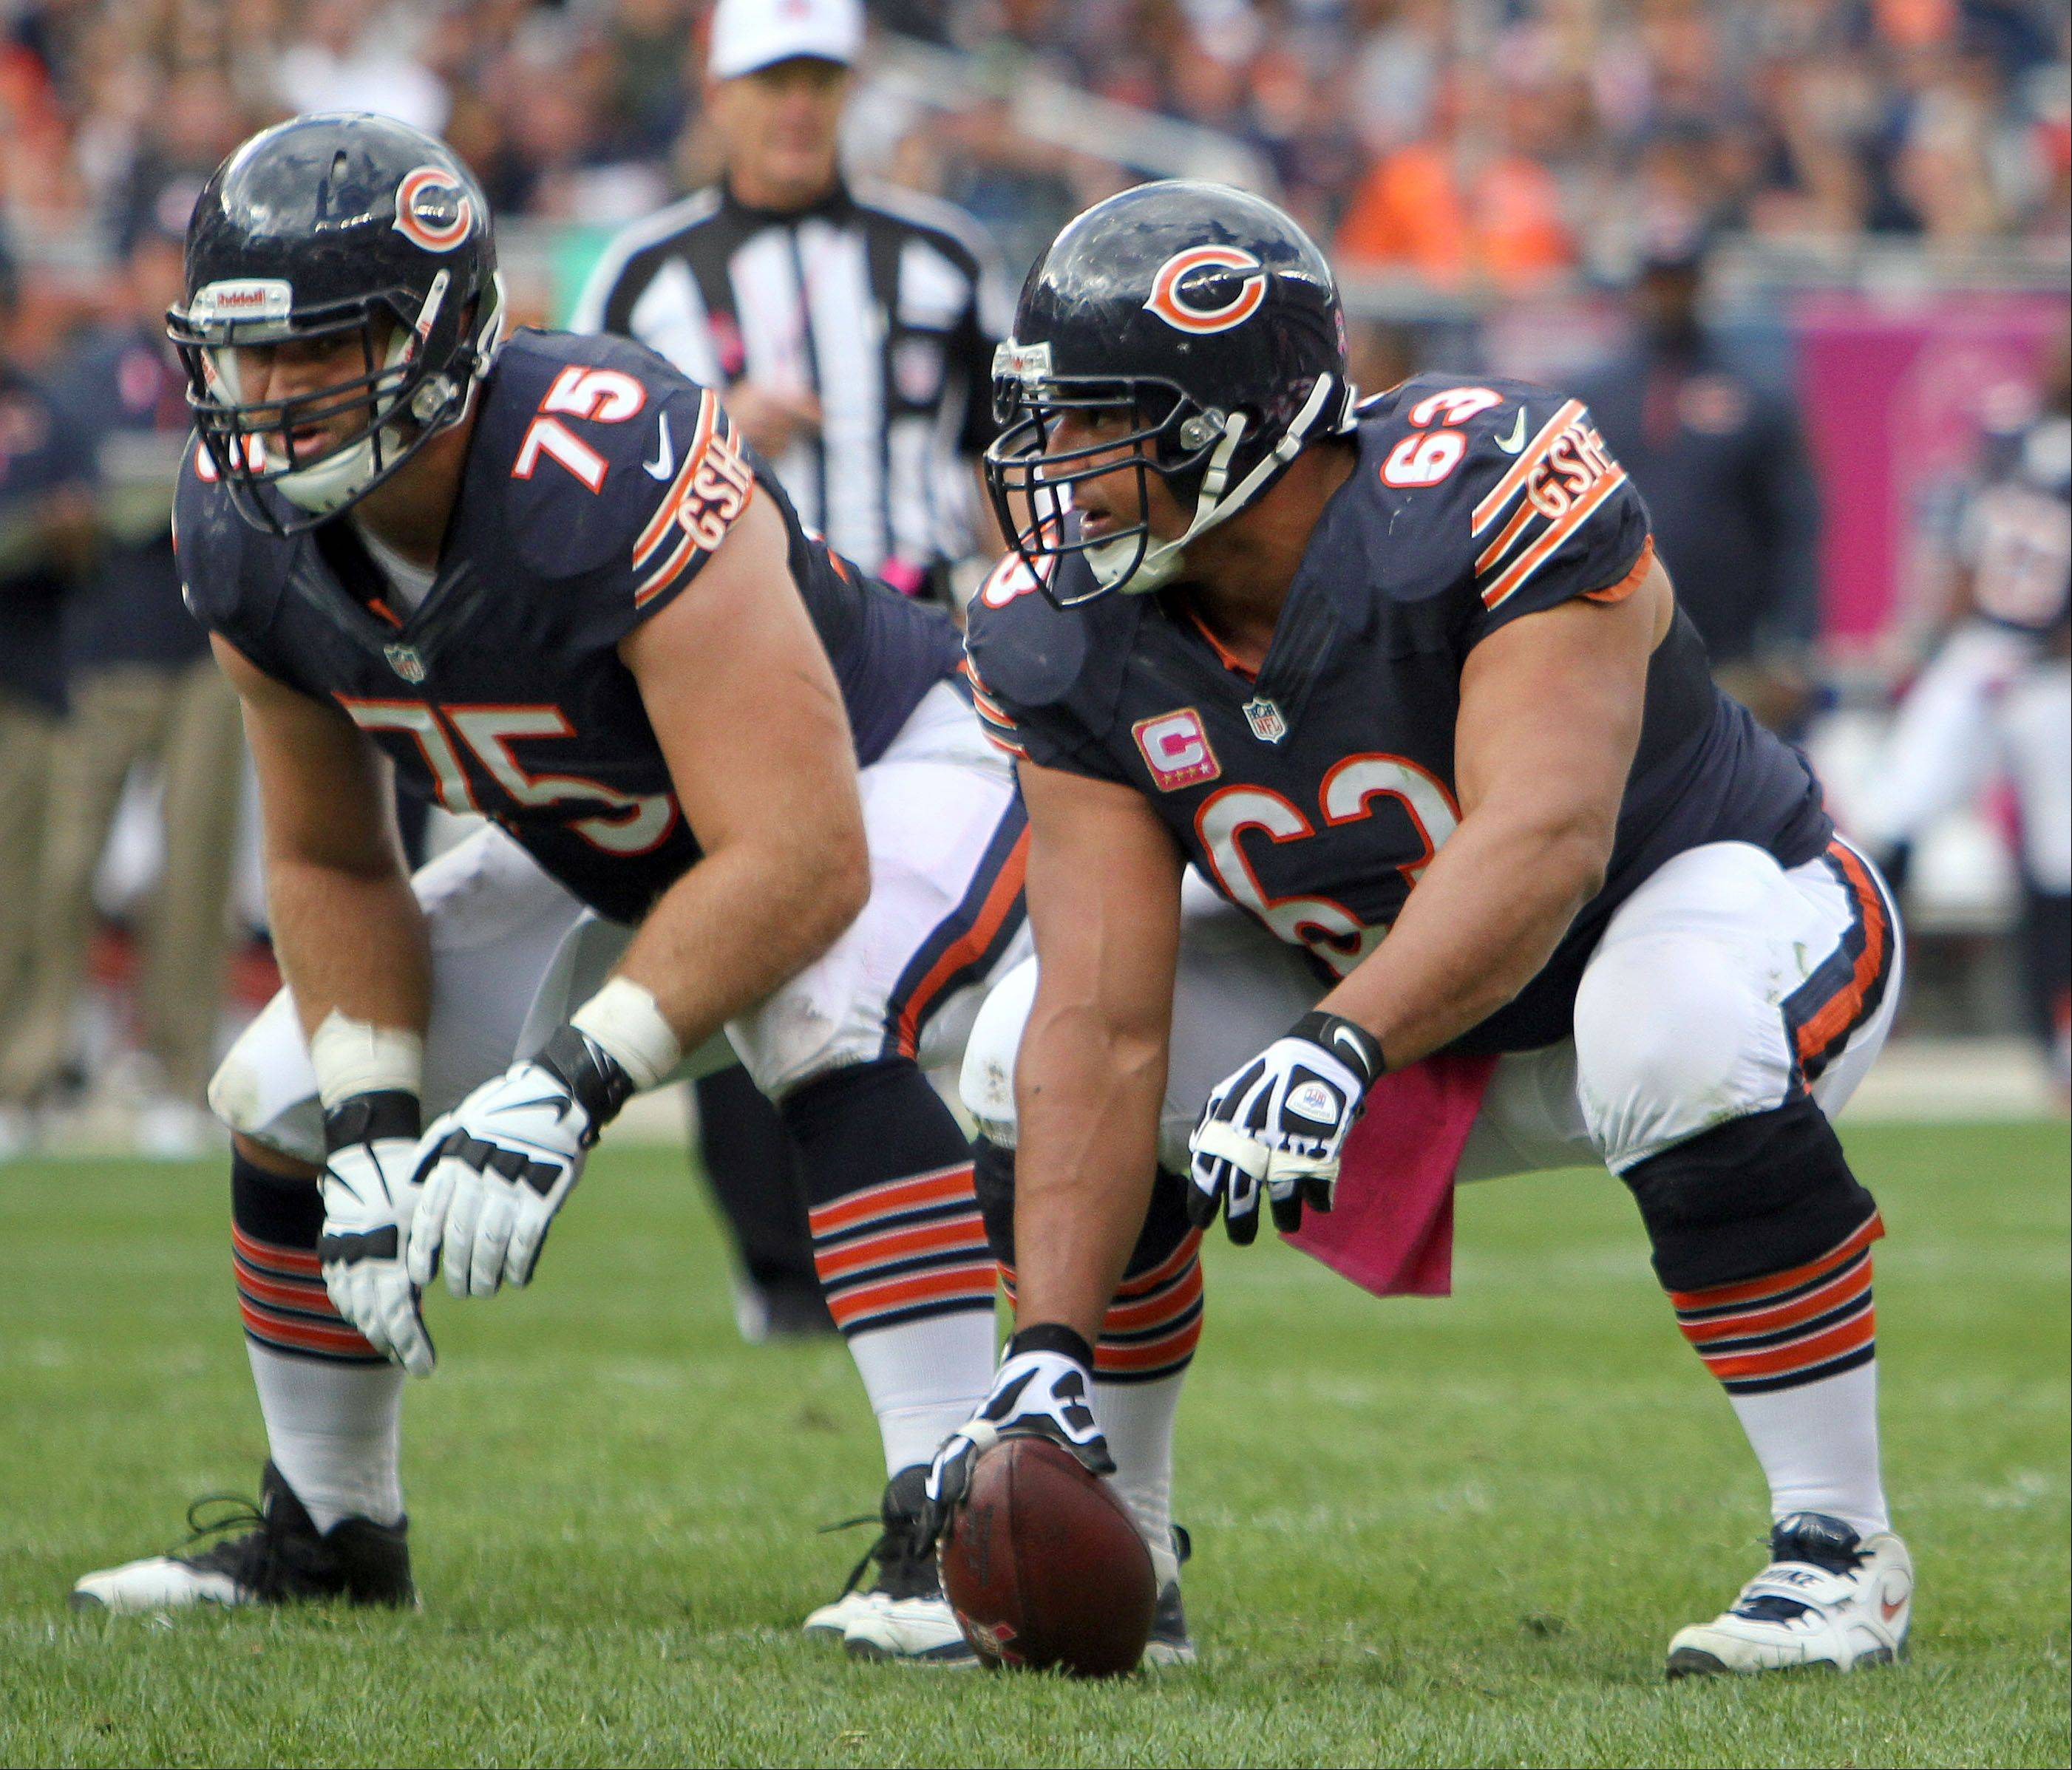 Center Roberto Garza, a 13-year veteran including the last nine with the Bears, has anchored an offensive line featuring the same five players starting in all 15 games this season � including rookie Kyle Long, left. The others, who are not pictured, are Jermon Bushrod, Matt Slauson and Jordan Mills.